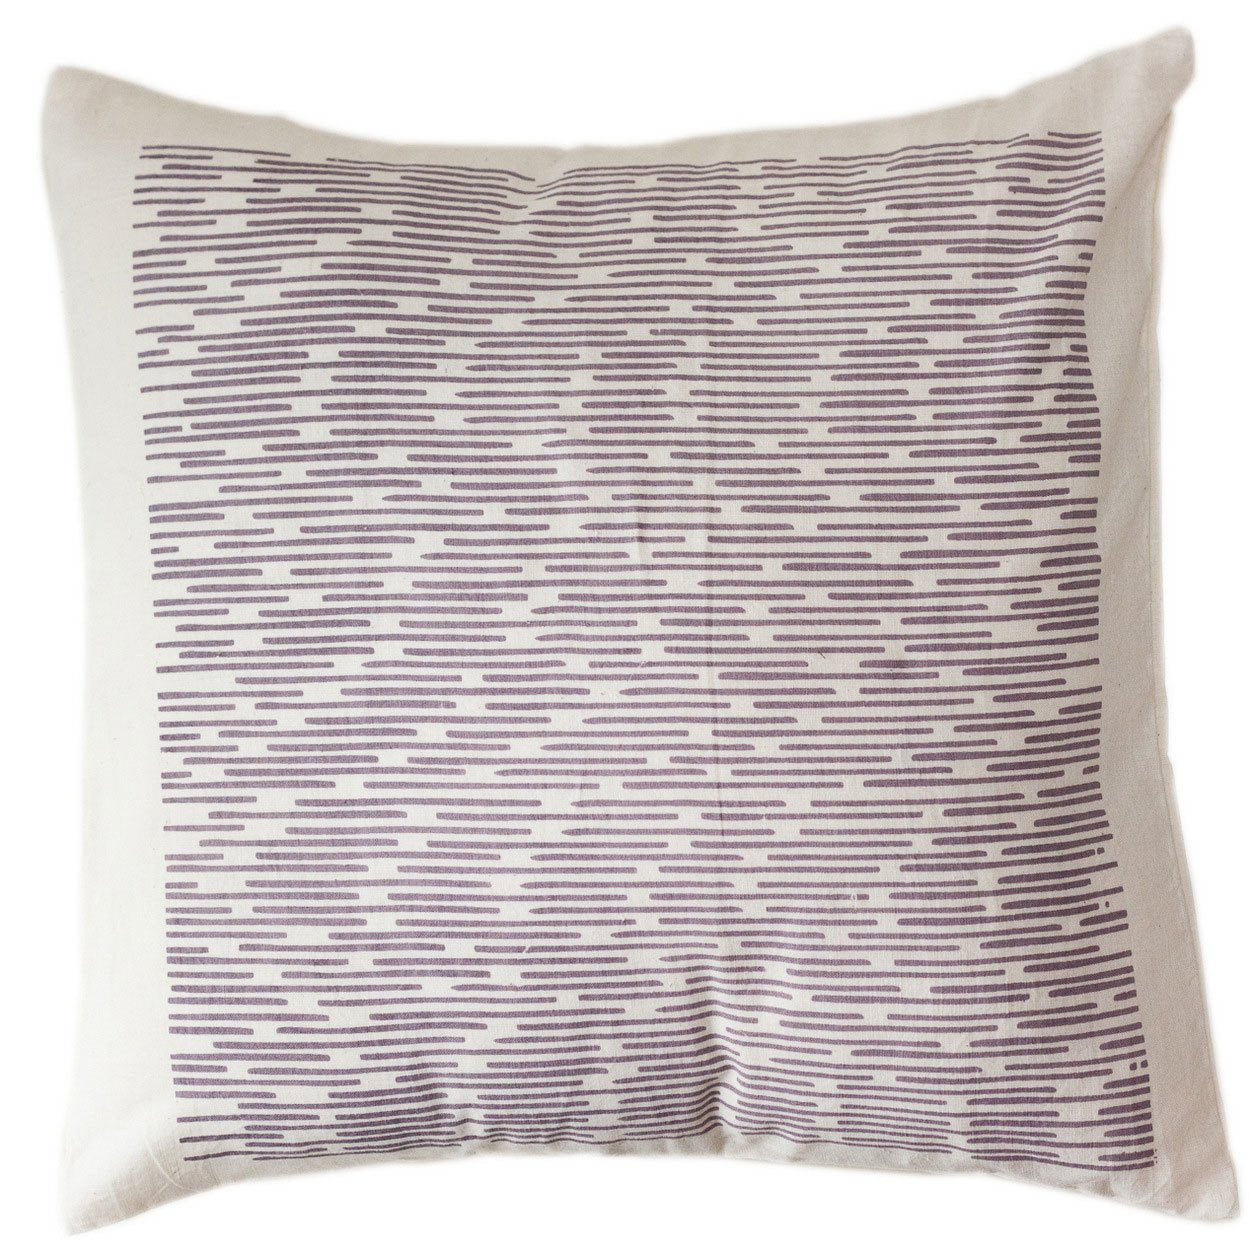 Purple Dashes Pillow Cover 12 by 12 - Sustainable Threads (Fair Trade)